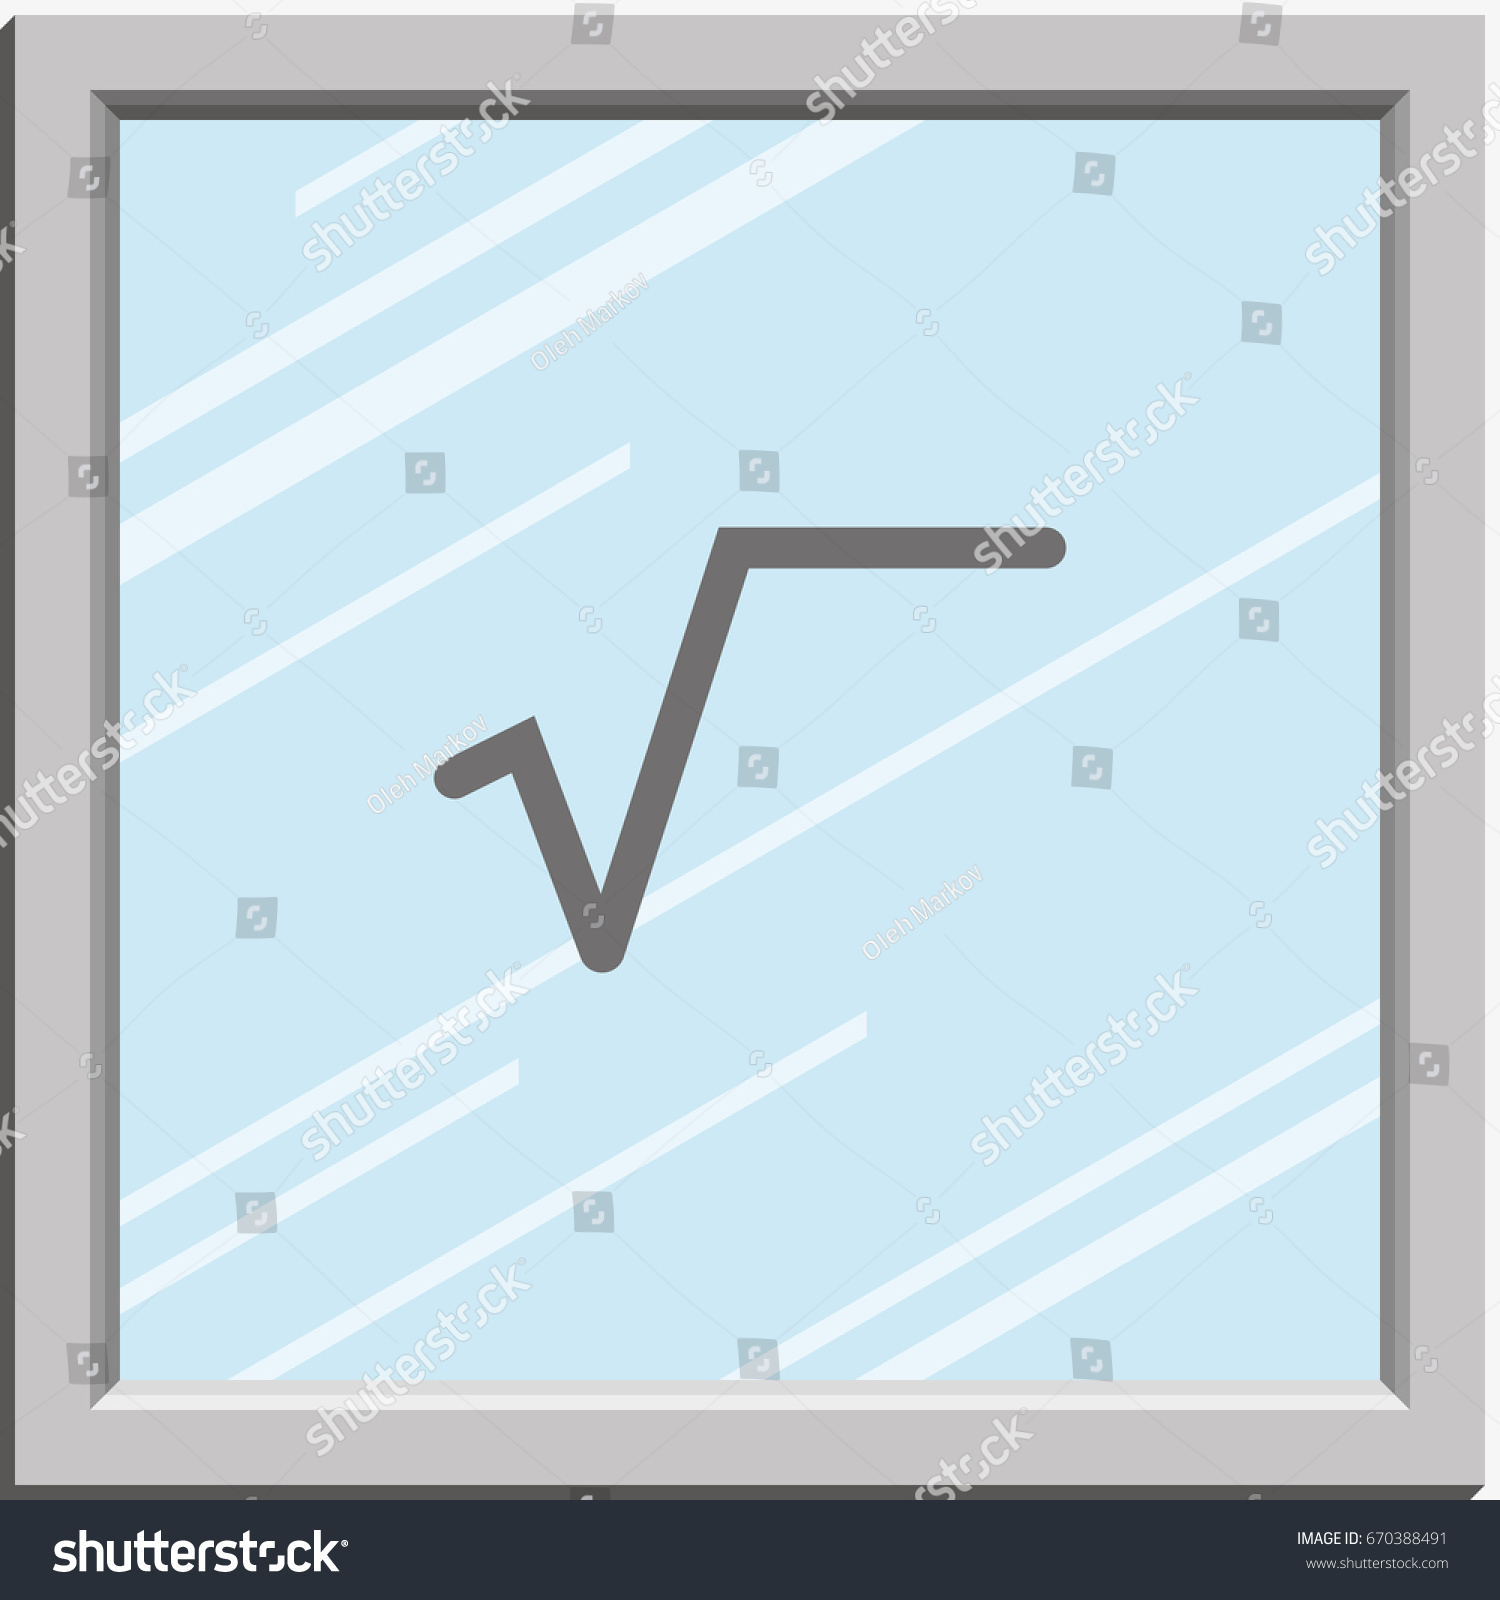 Square root symbol flat icon stock vector 670388491 shutterstock square root symbol flat icon buycottarizona Images